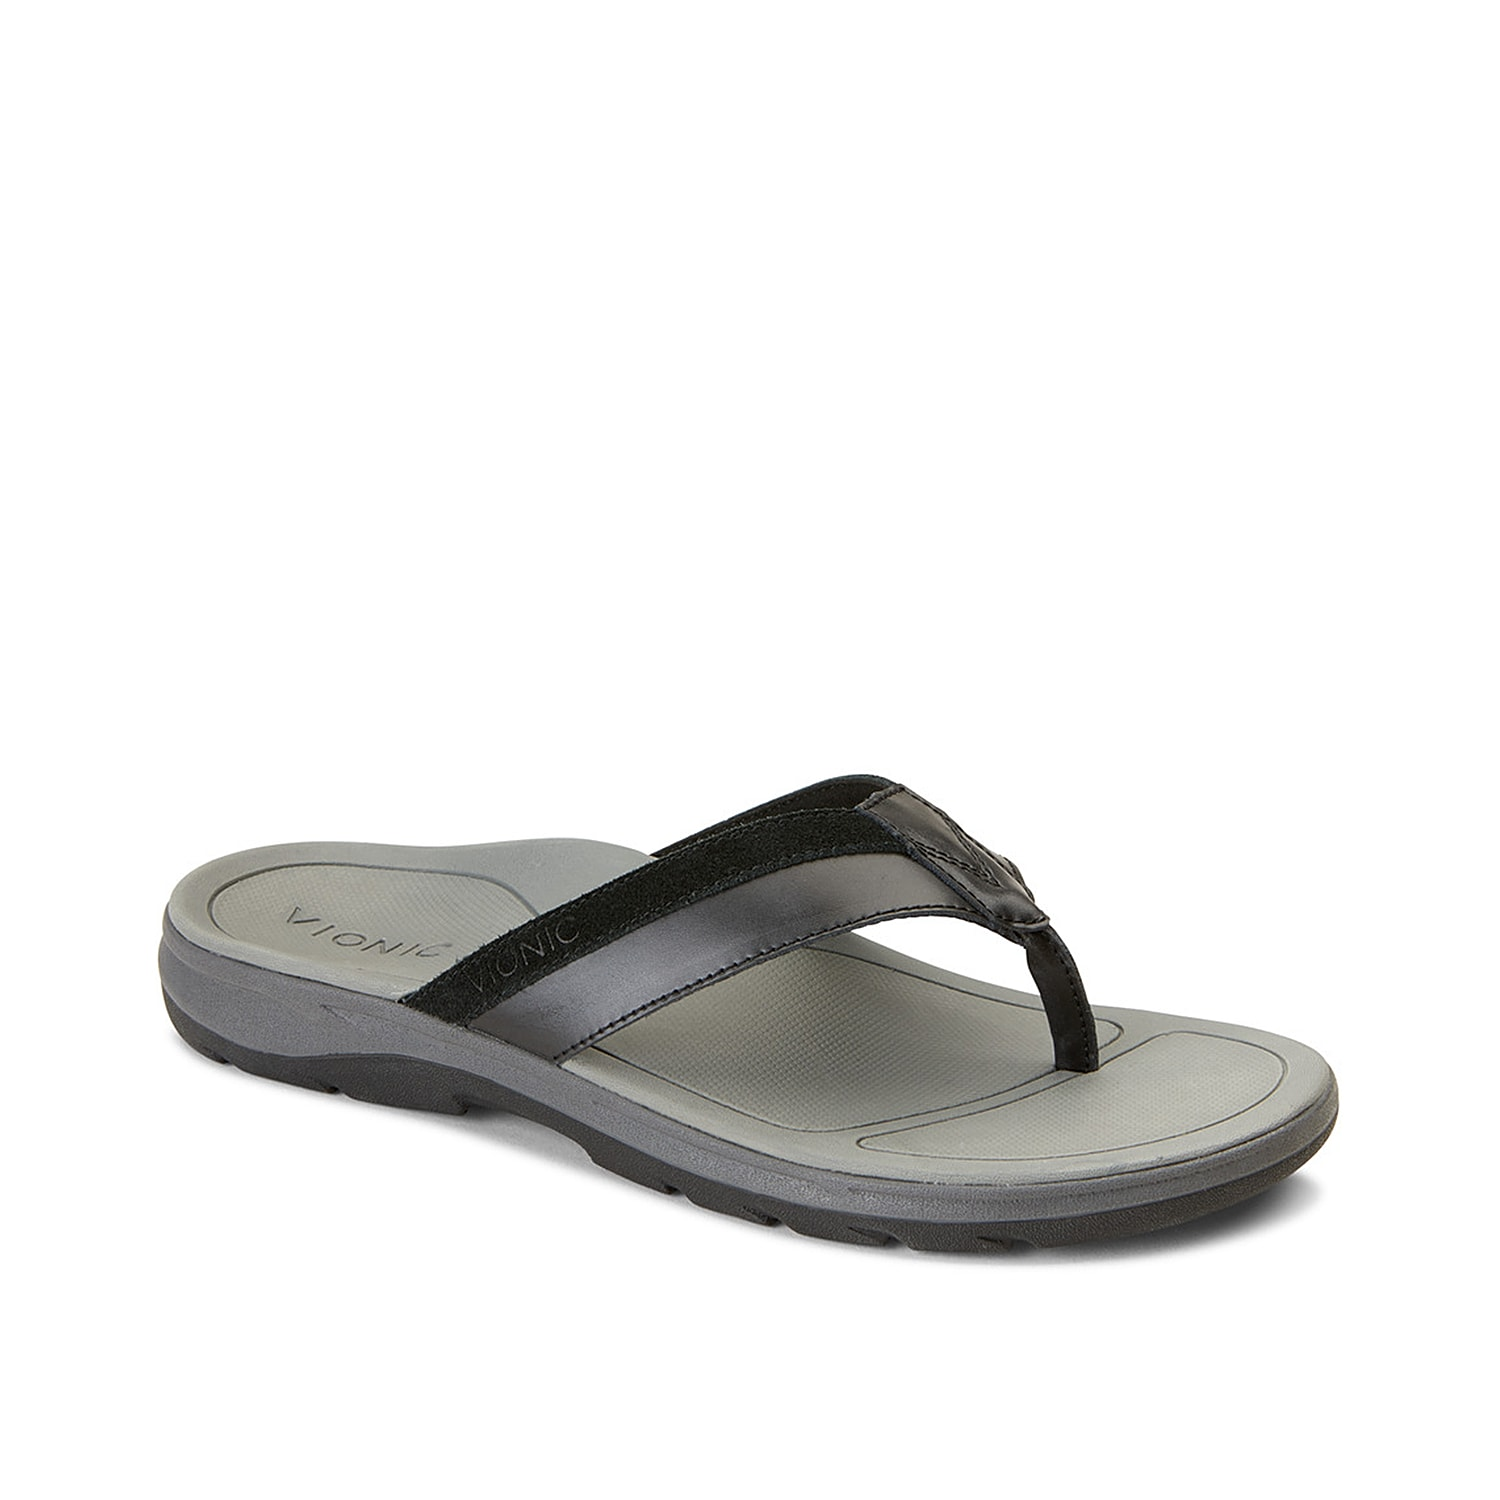 Laze out in style with the Dennis thong sandal from Vionic. It features two-tone leather thong straps, contoured footbed that cradle your foot in comfort and durable rubber sole with treads for sturdy footing.